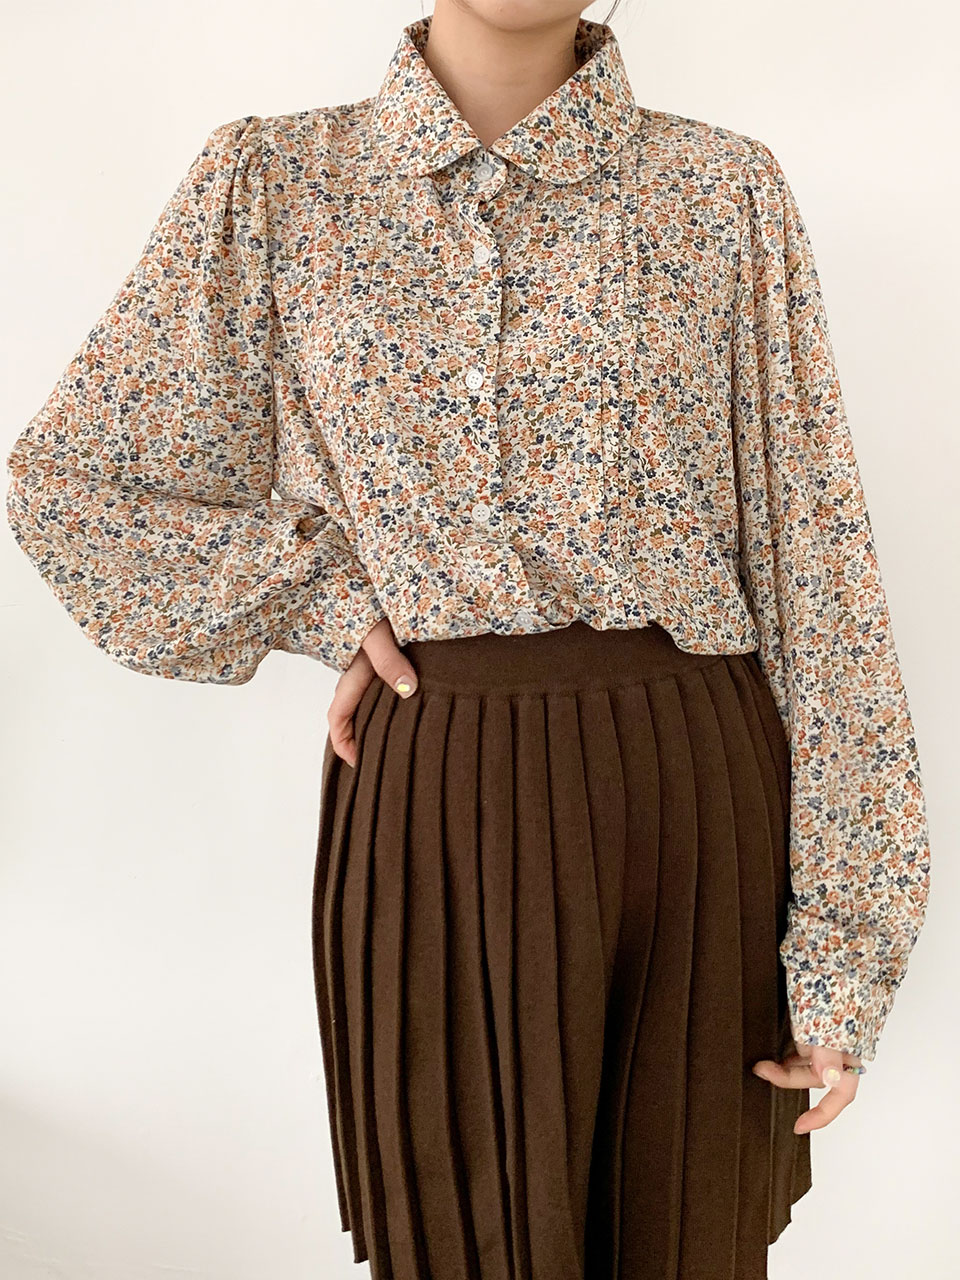 pin tuck floral blouse(2color)